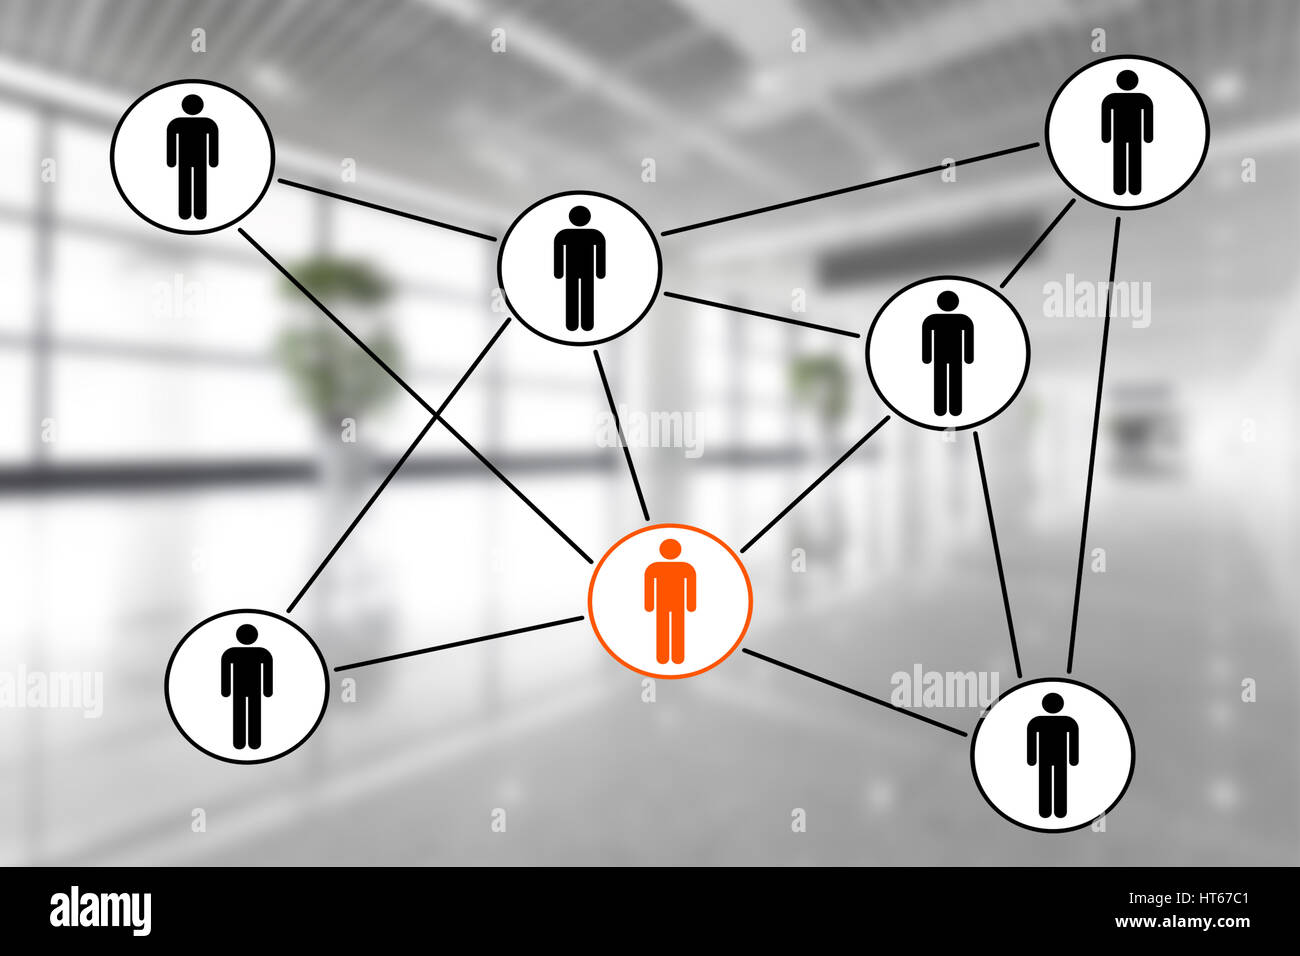 business relationships concept - Stock Image